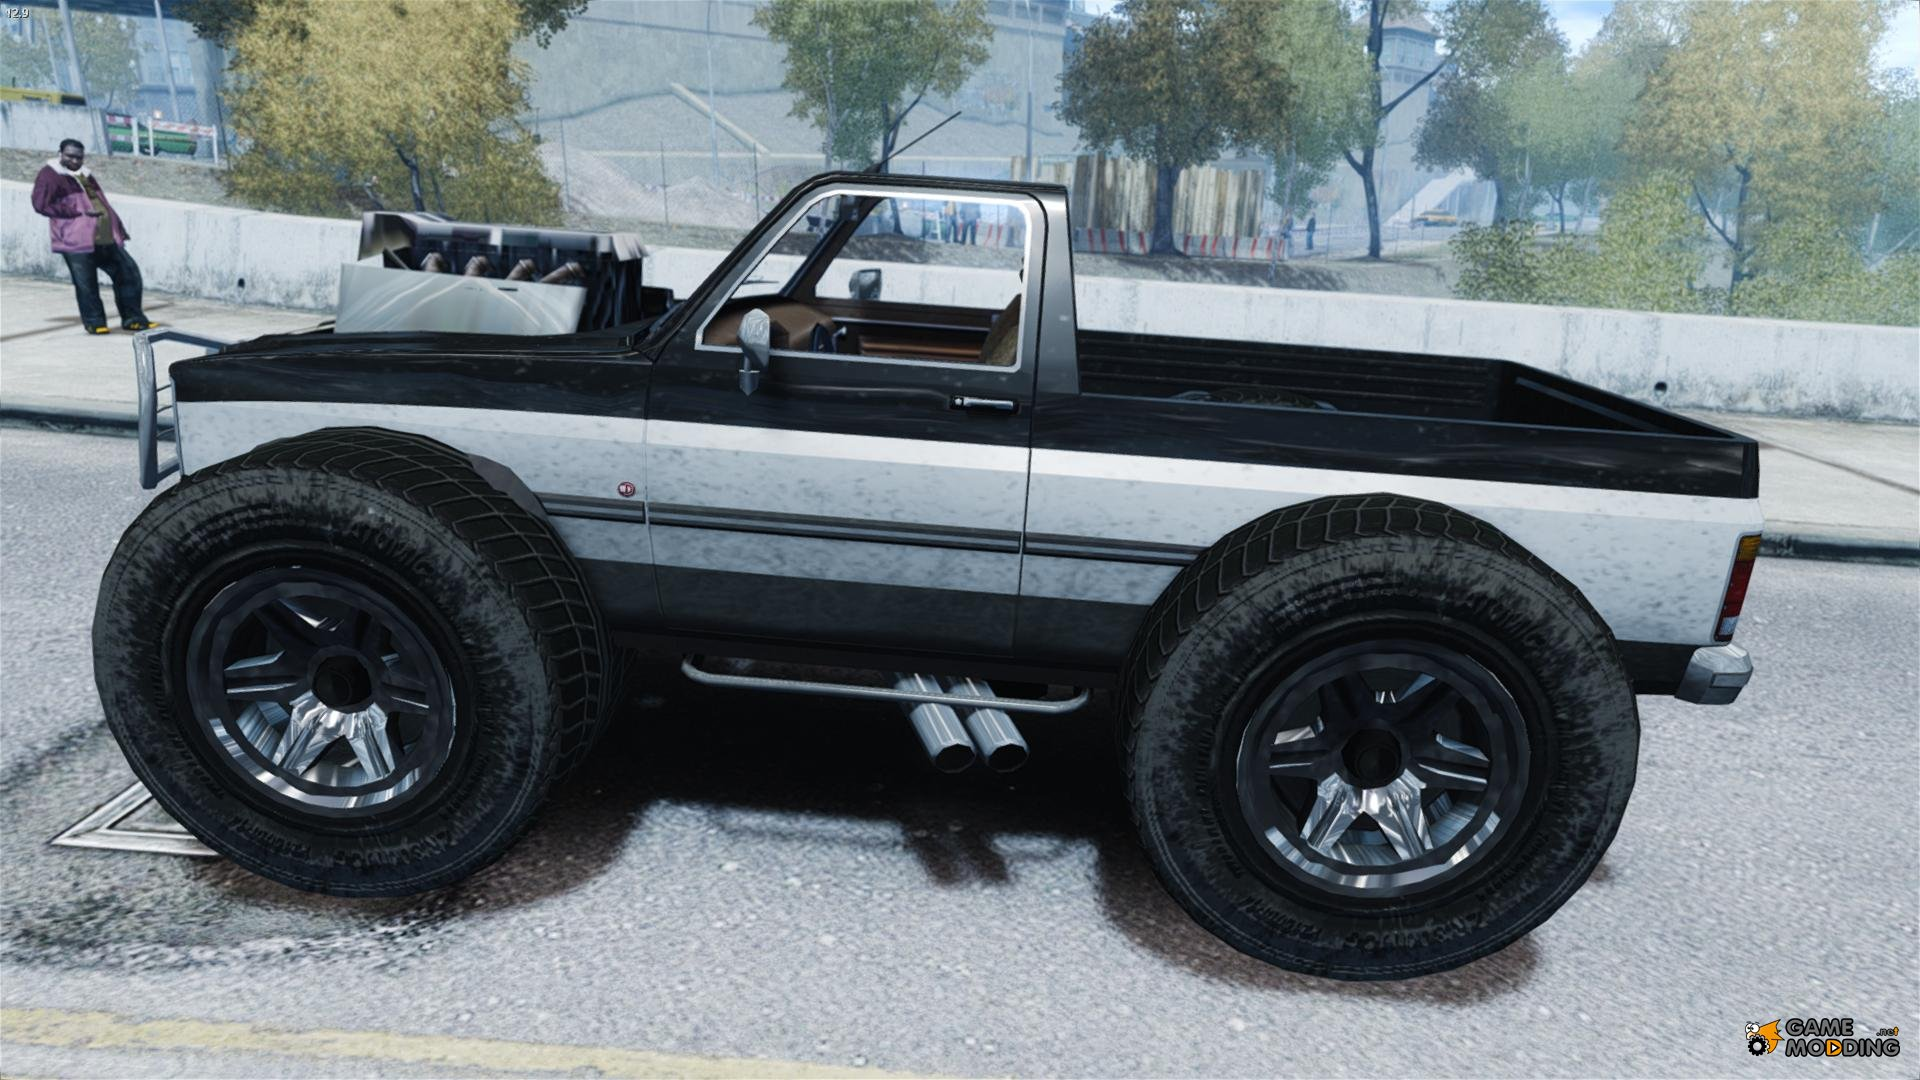 Lifted Cars In Gta 5 | www.imgkid.com - The Image Kid Has It!